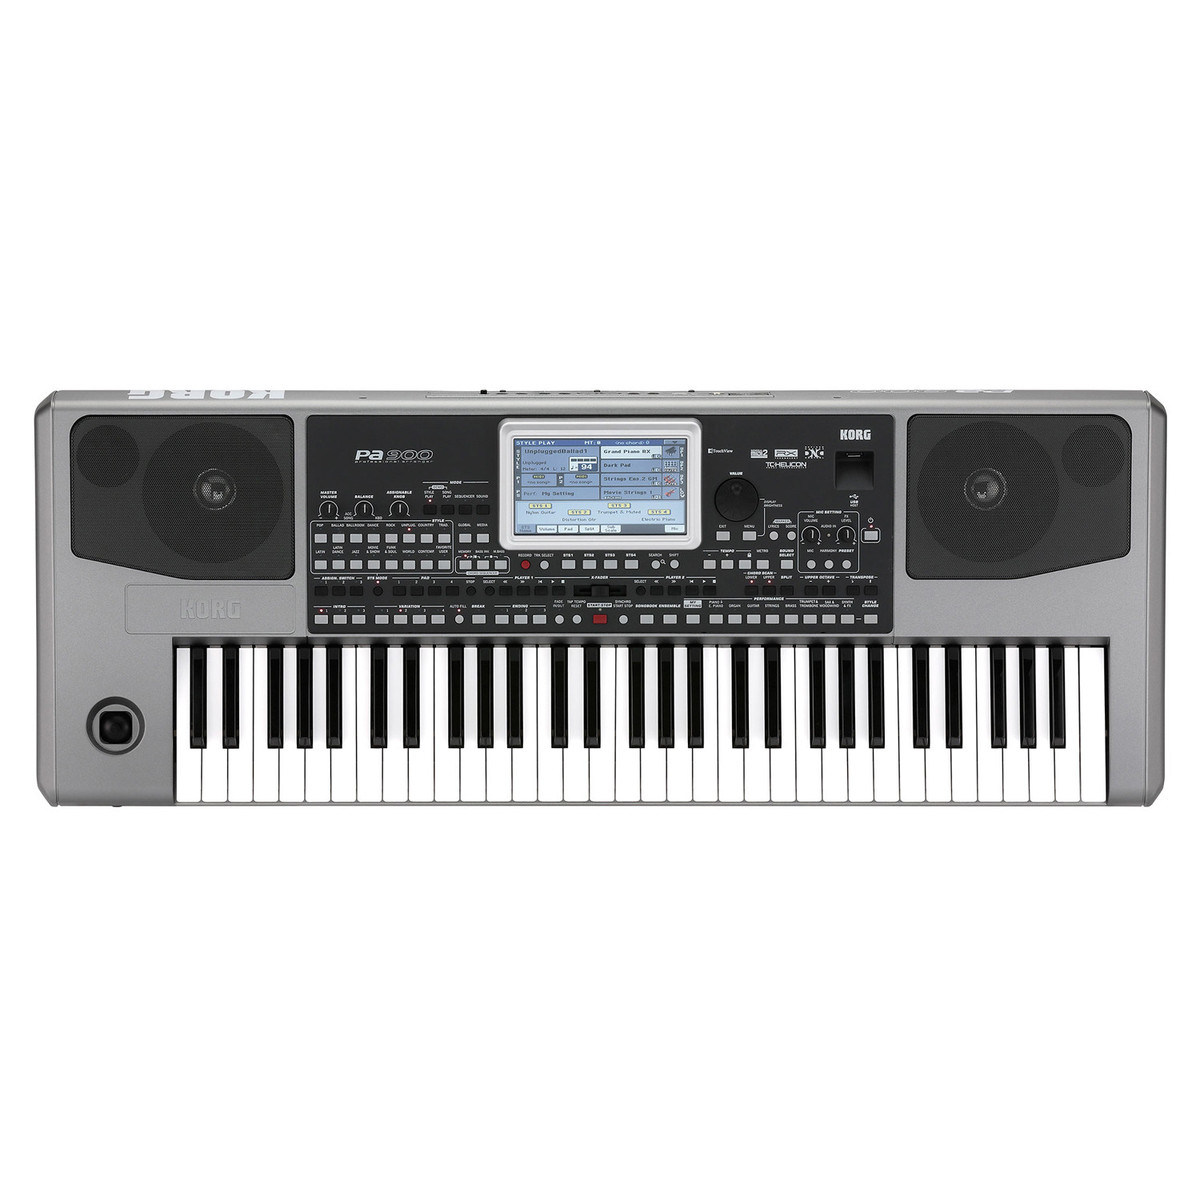 korg pa900 professional arranger keyboard with stand and amplifier at. Black Bedroom Furniture Sets. Home Design Ideas